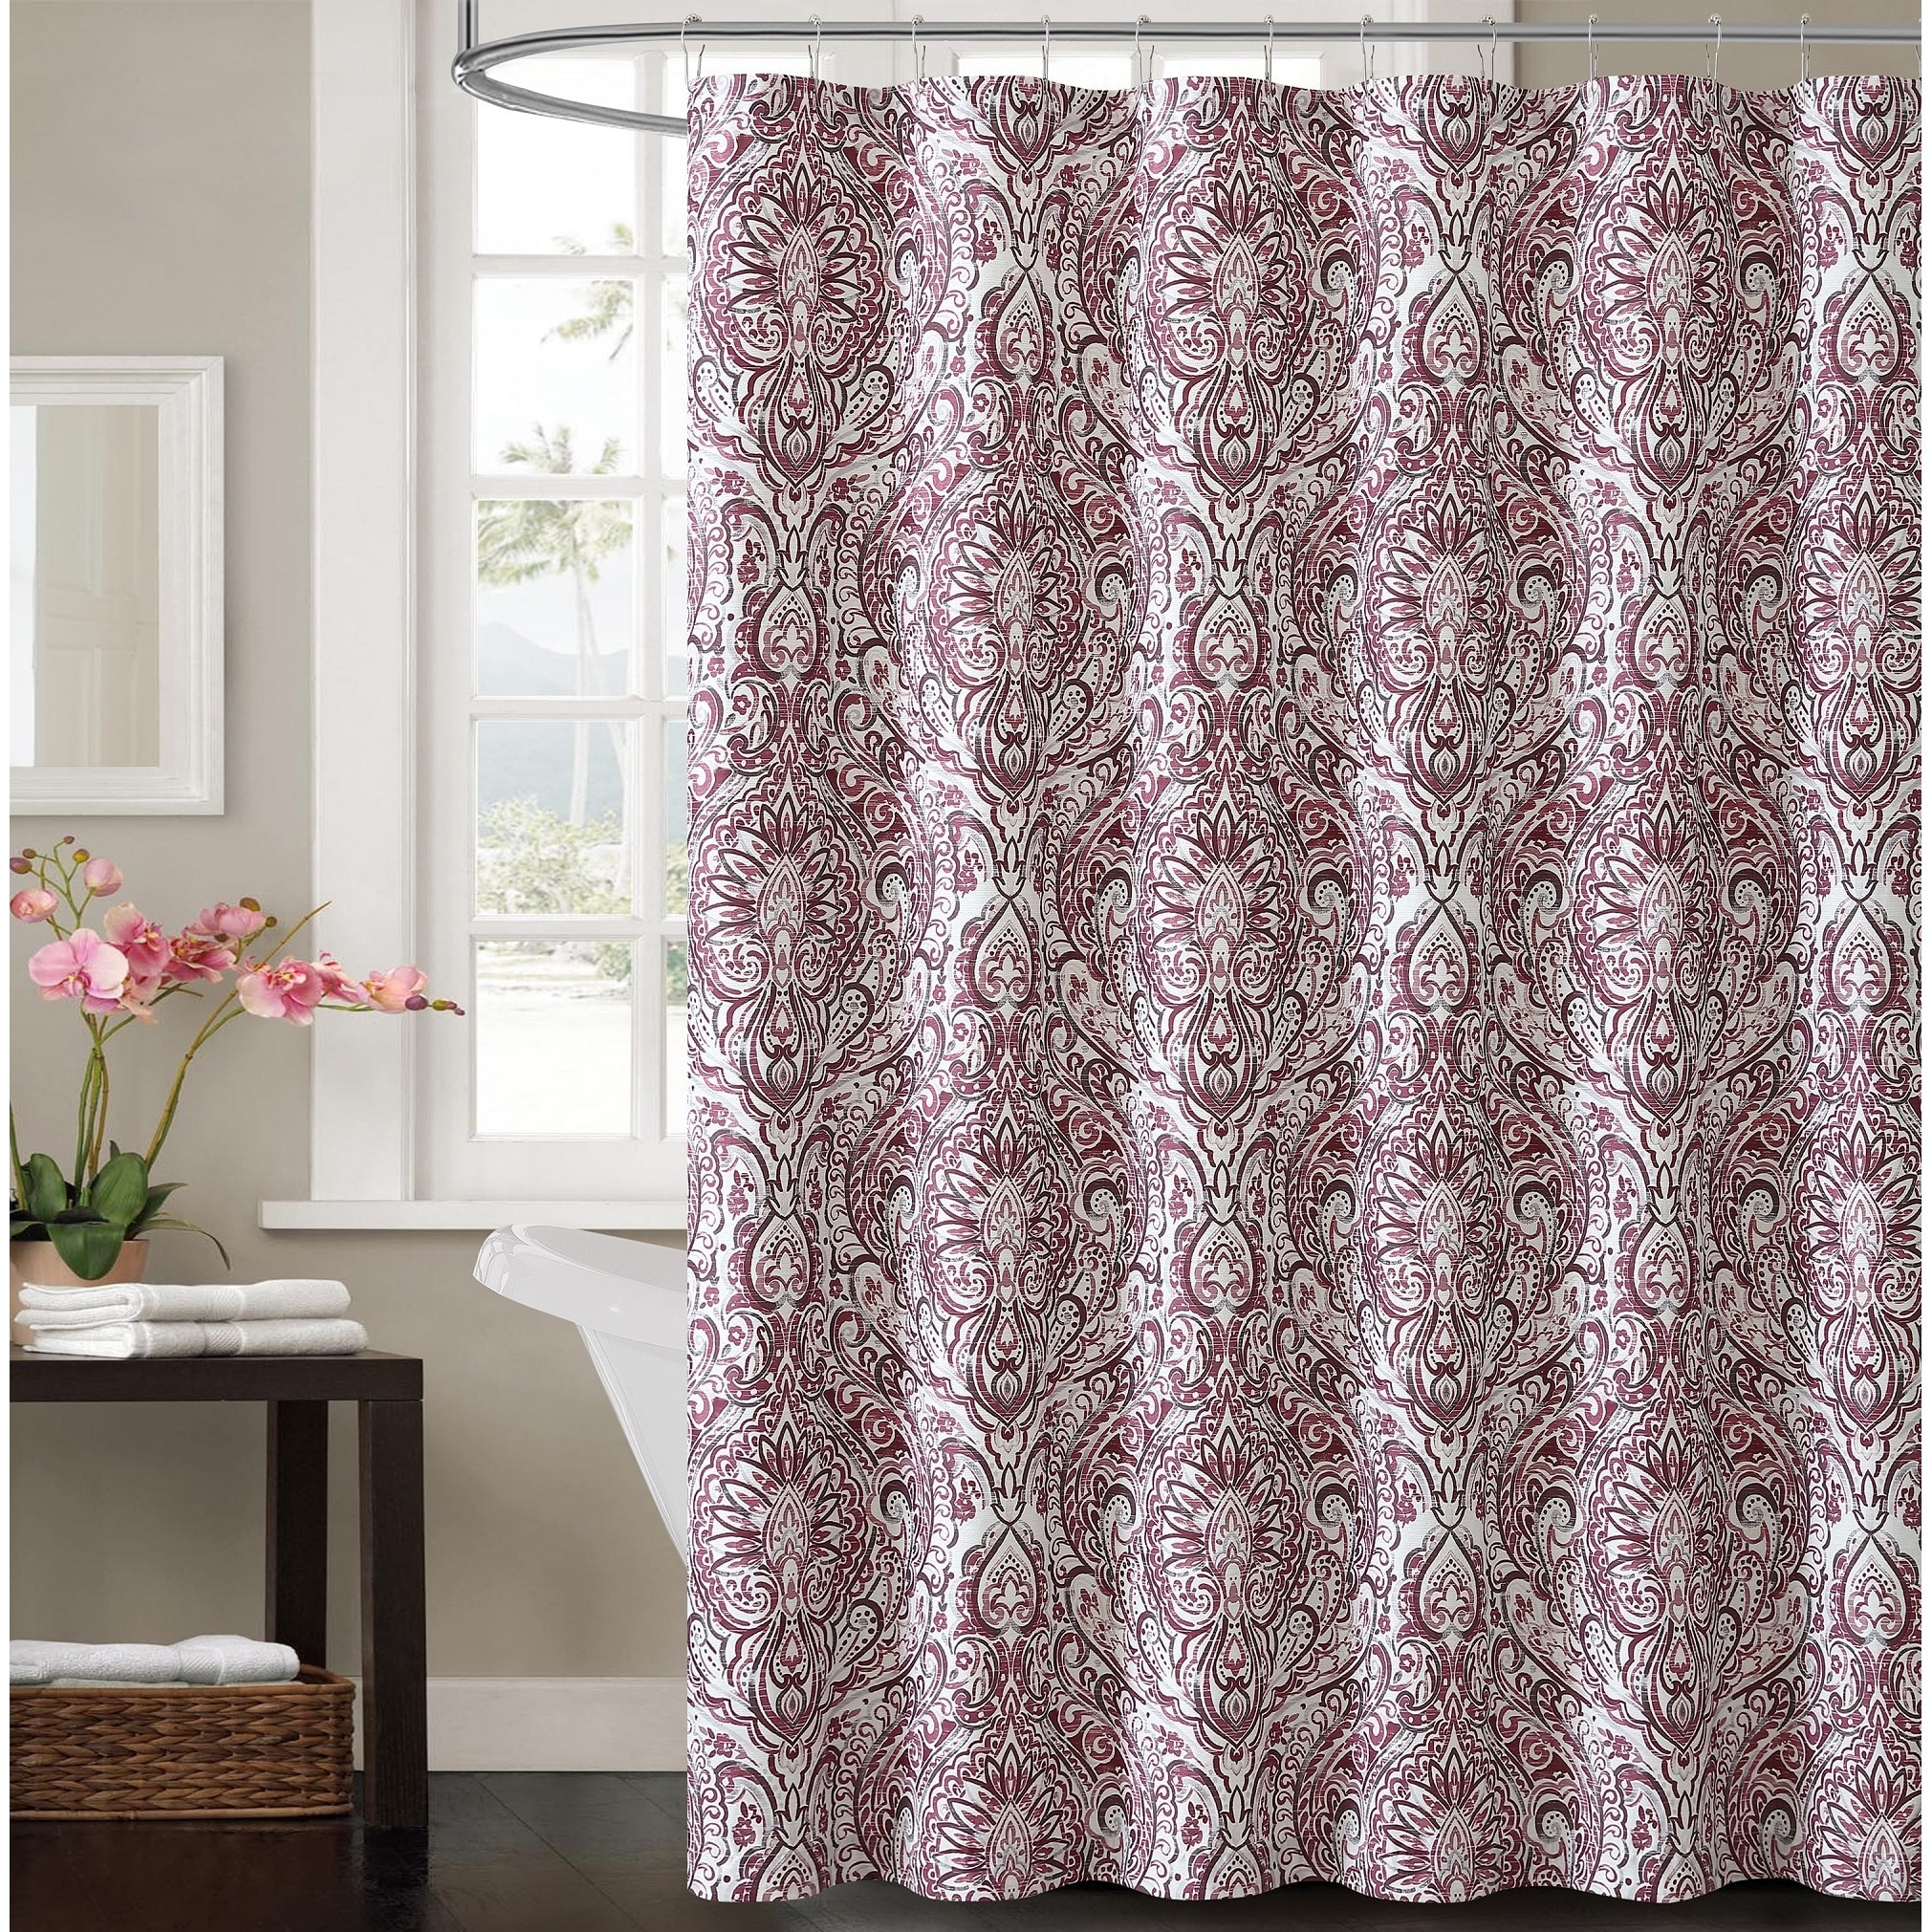 Vcny Home Elanza Shower Curtain (72x72 - Plum (Purple)) (...